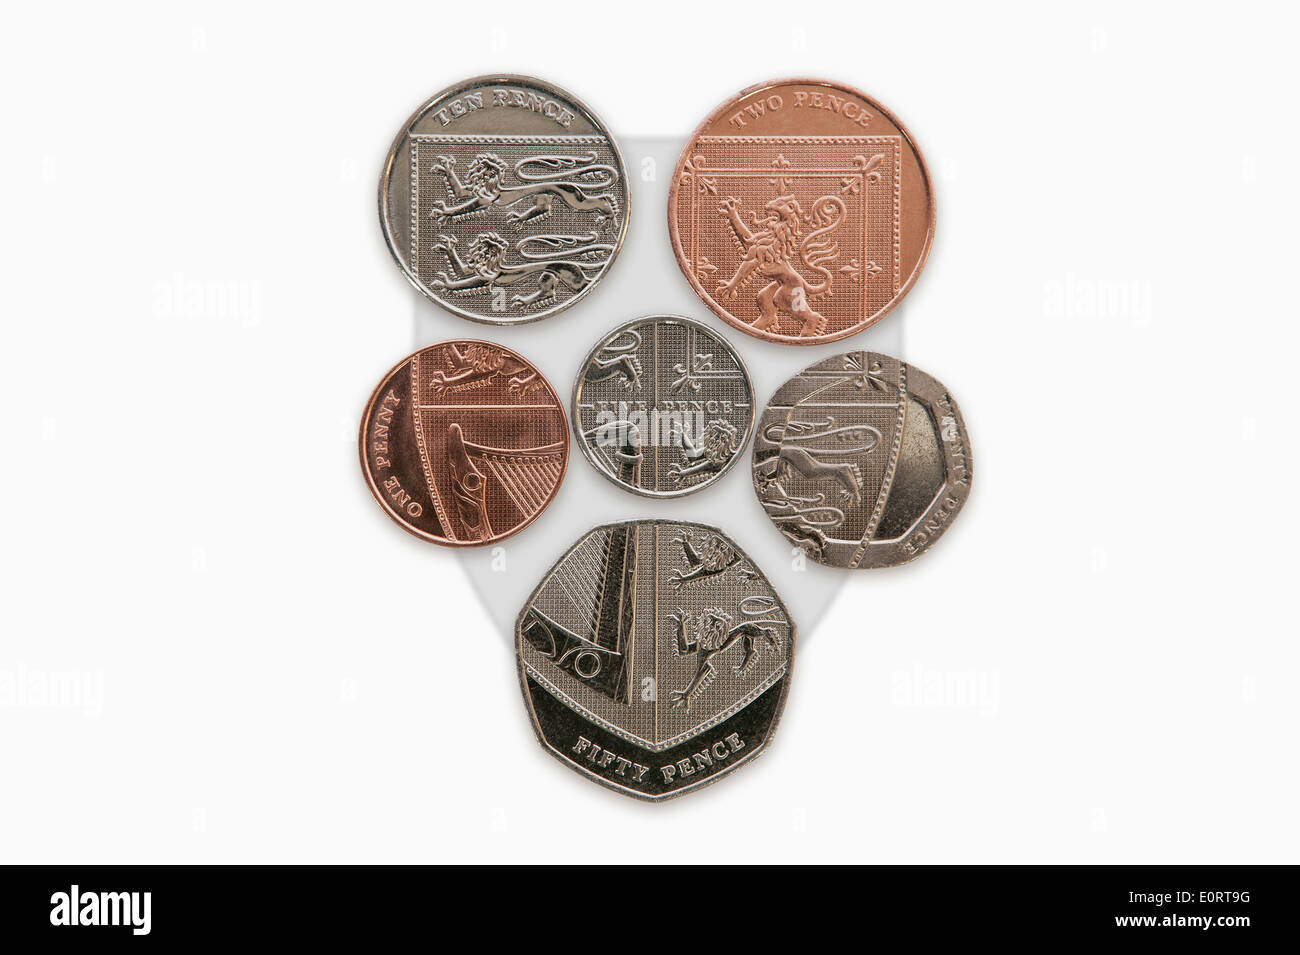 Reverse side of British sterling coins which form the Queen's coat of arms shield - Stock Image